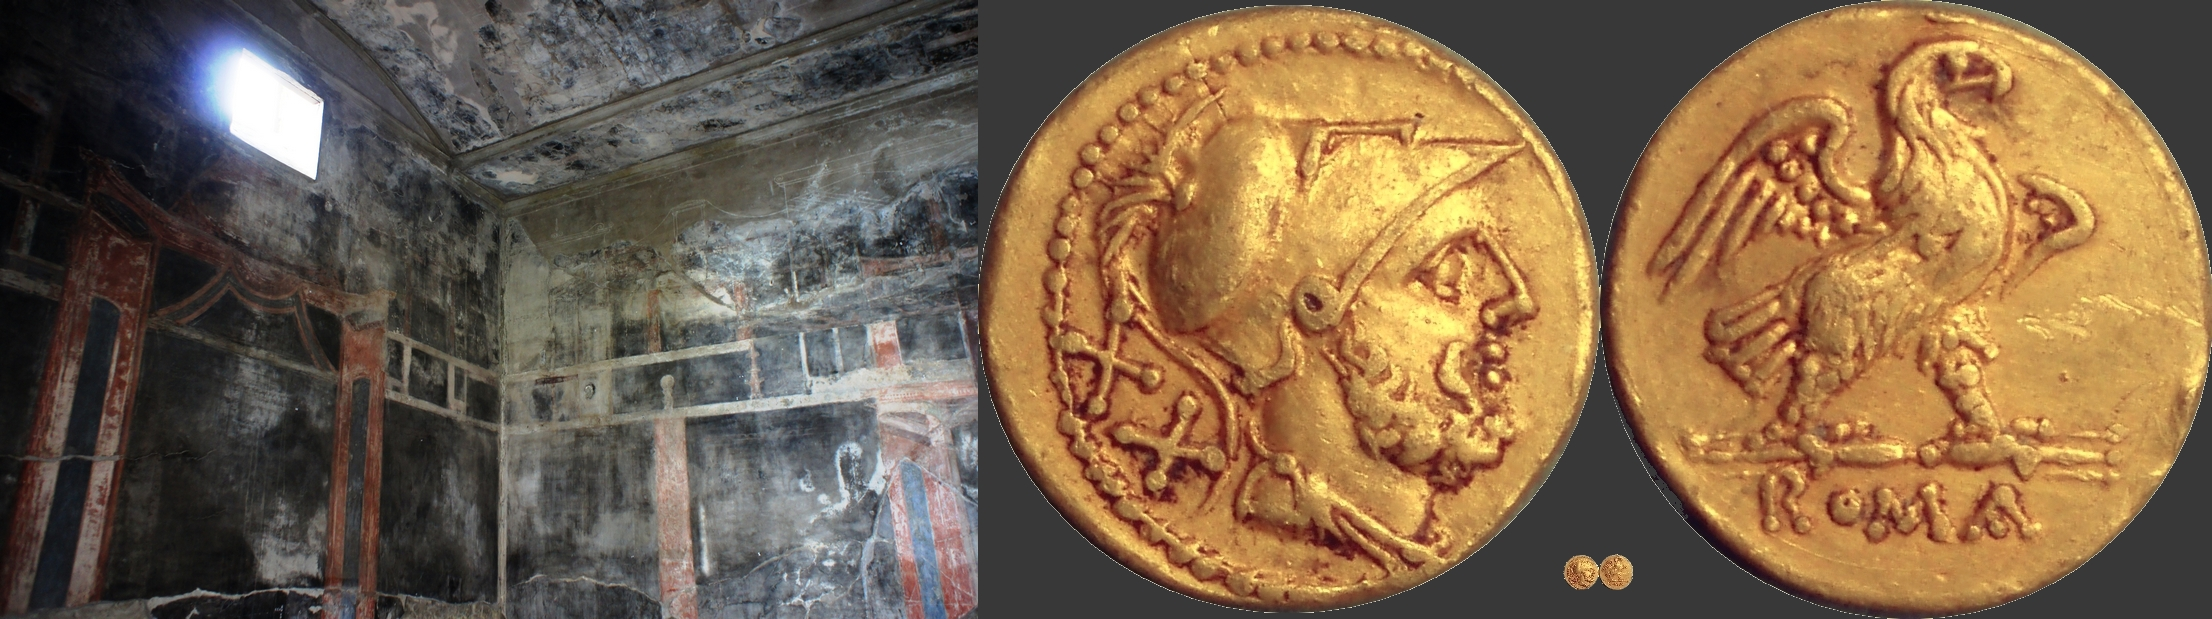 44-4 gold coin with Mars and Eagle of the 2nd Punic War, and display of wealth in a large Herculaneum dining room, the House of the Black Salon